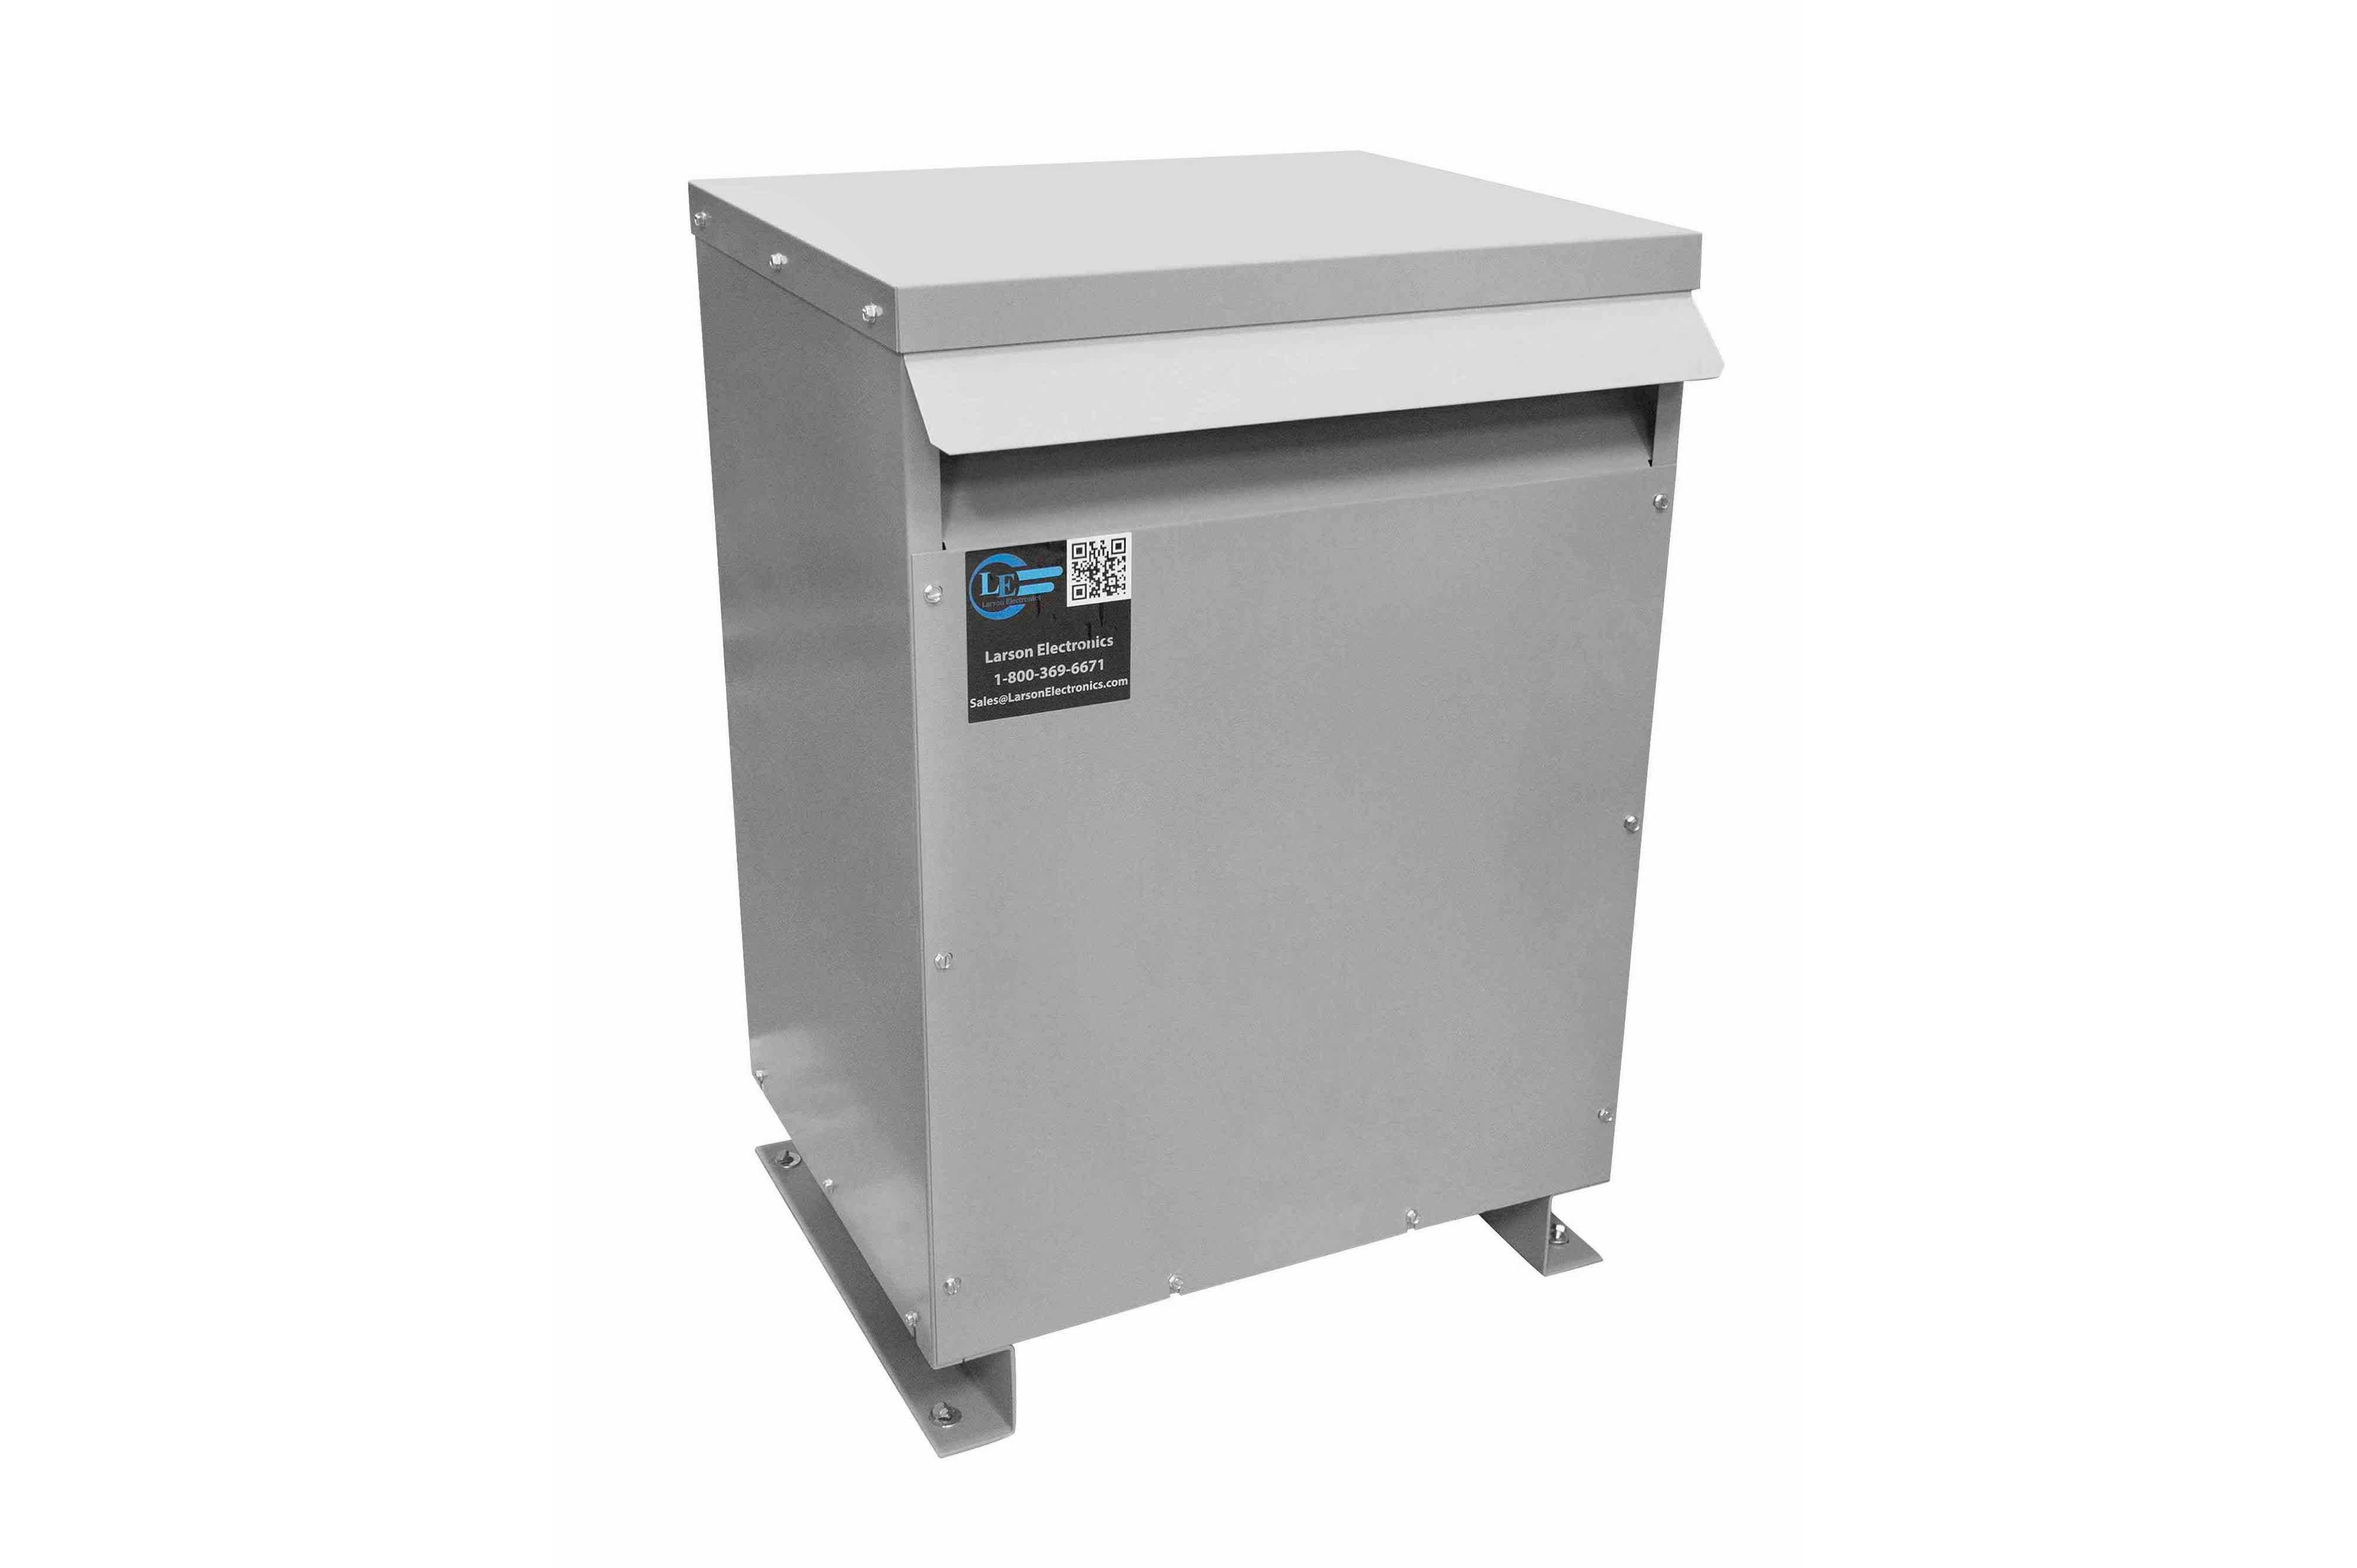 150 kVA 3PH Isolation Transformer, 208V Delta Primary, 208V Delta Secondary, N3R, Ventilated, 60 Hz